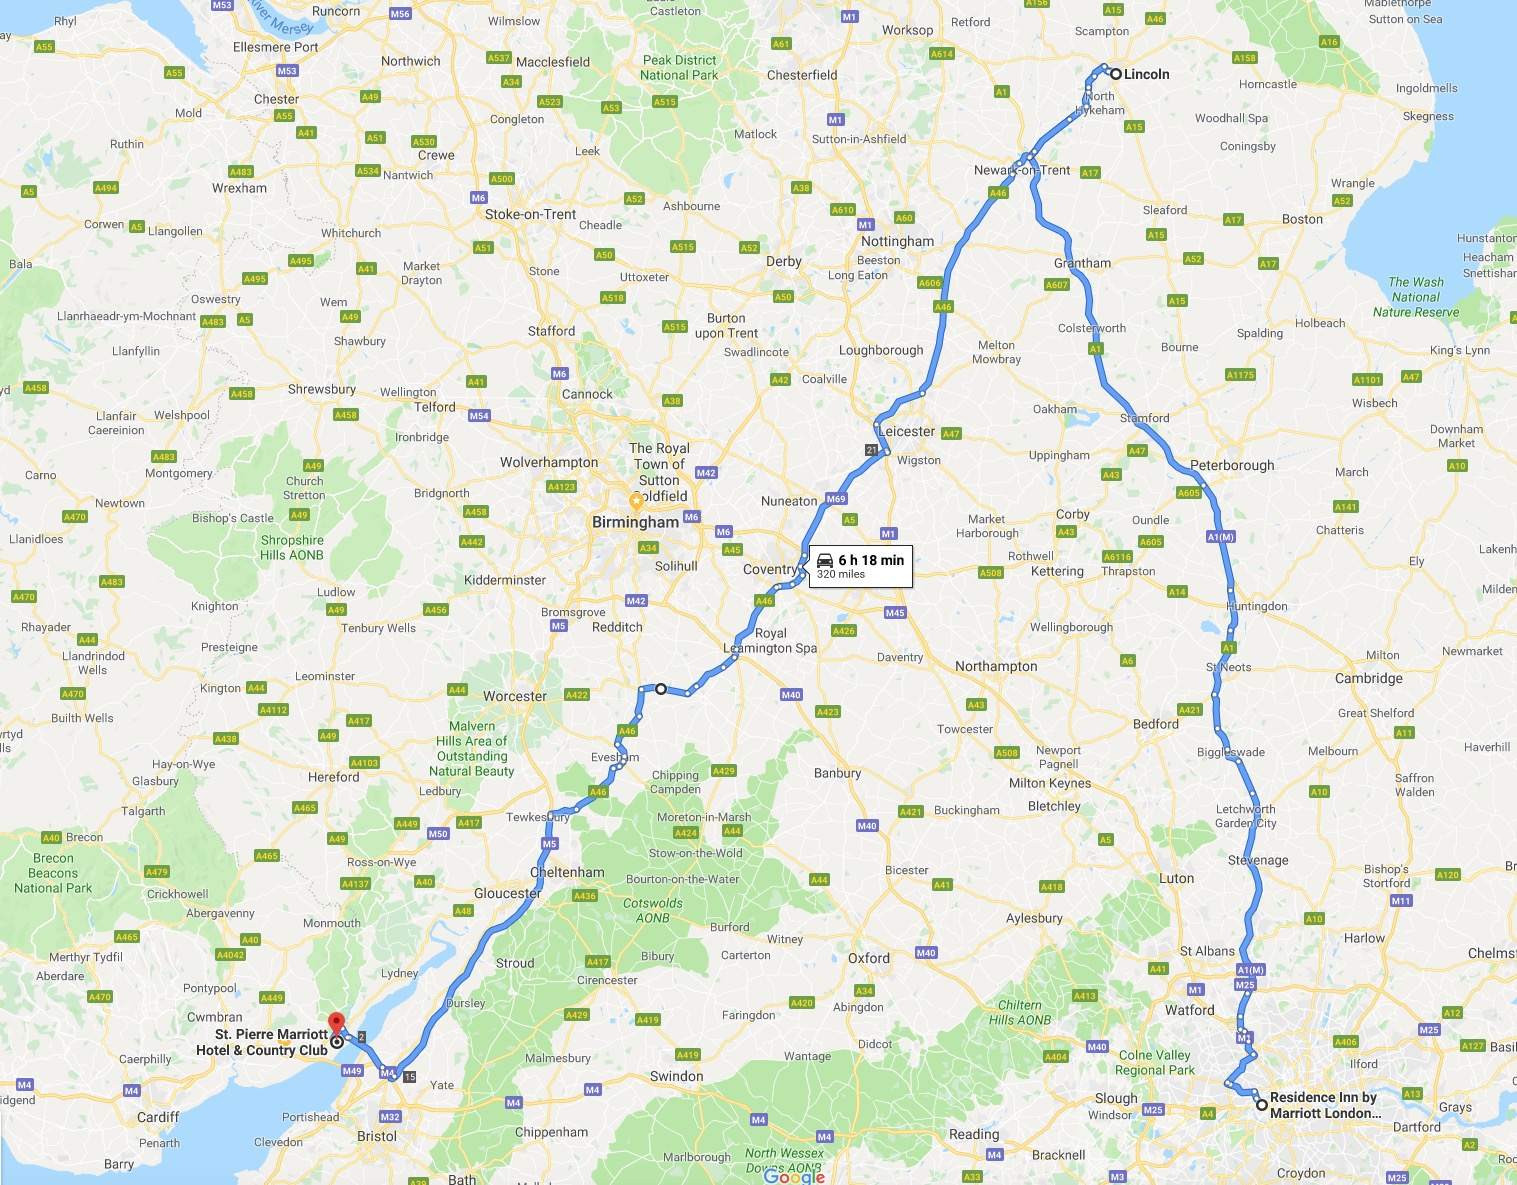 Our big day on the British motorways, as we probably covered about half the country.